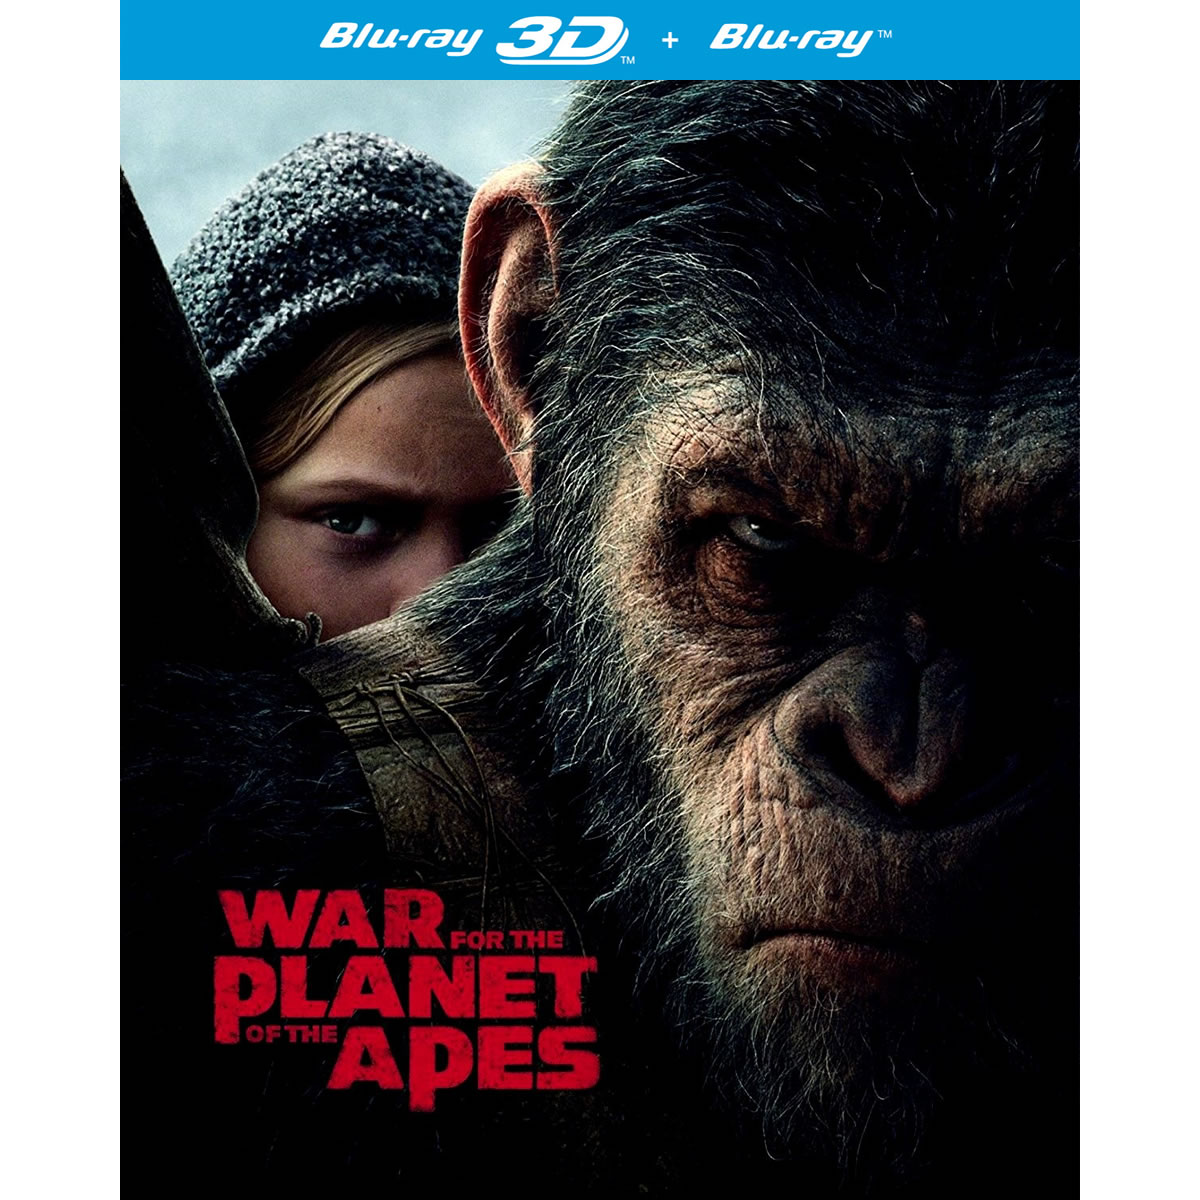 WAR FOR THE PLANET OF THE APES 3D (BLU-RAY 3D/2D)